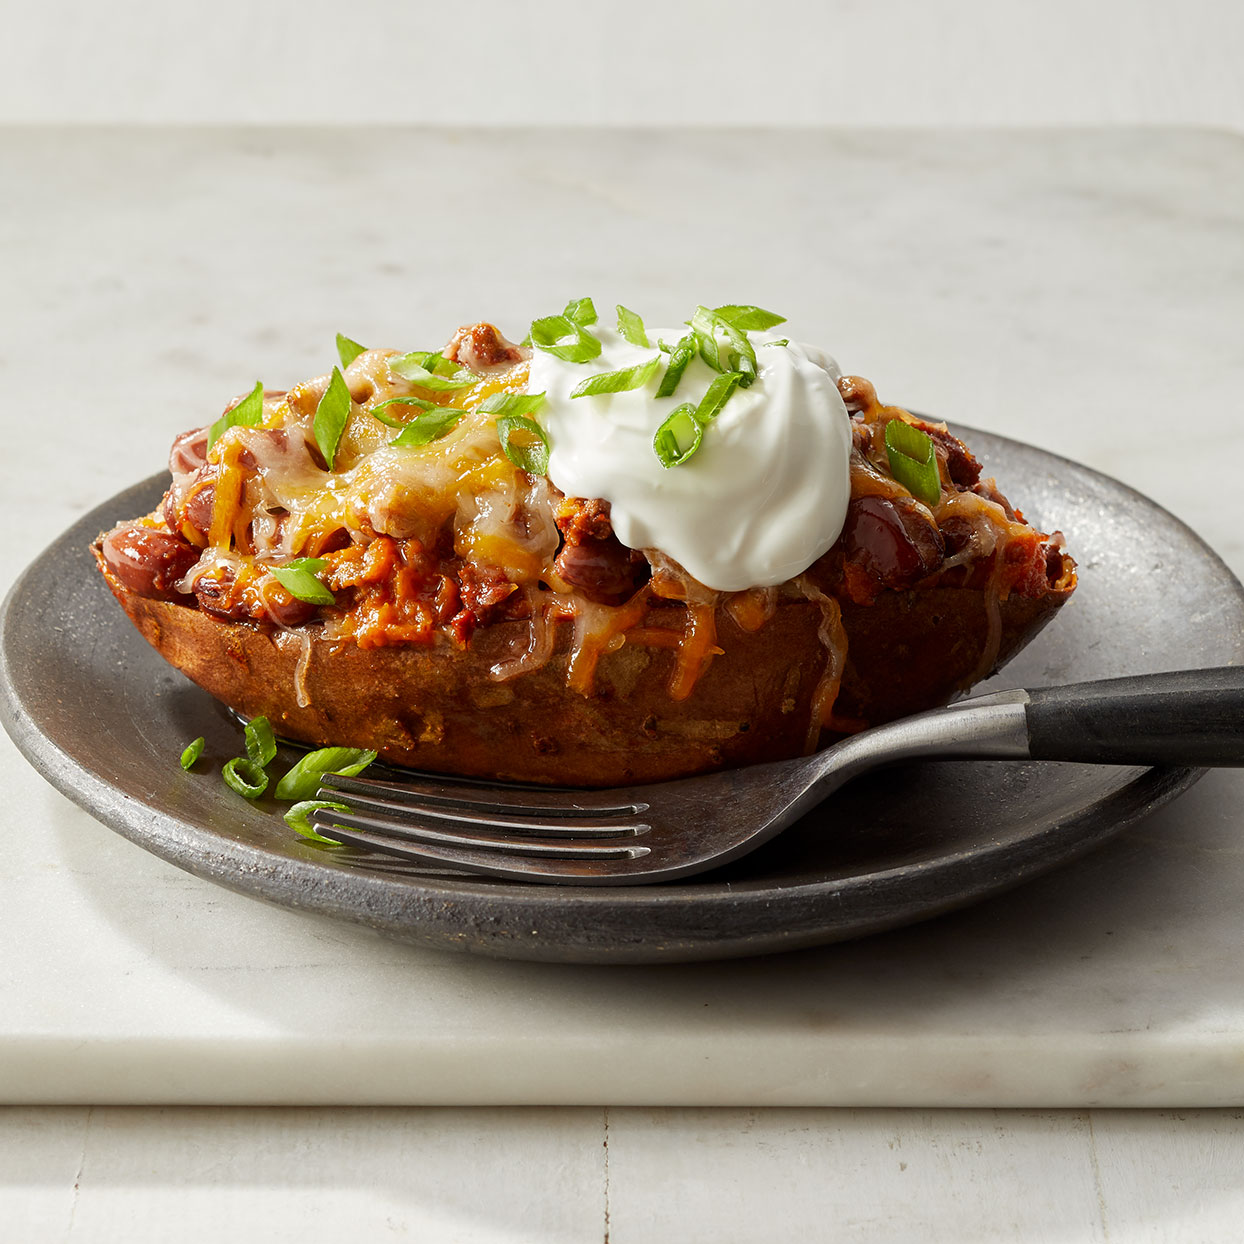 Sweet potatoes pair wonderfully with this simple chili recipe. Add one more chipotle pepper if you want to spice up this healthy sweet potato recipe. Source: Diabetic Living Magazine, Winter 2020